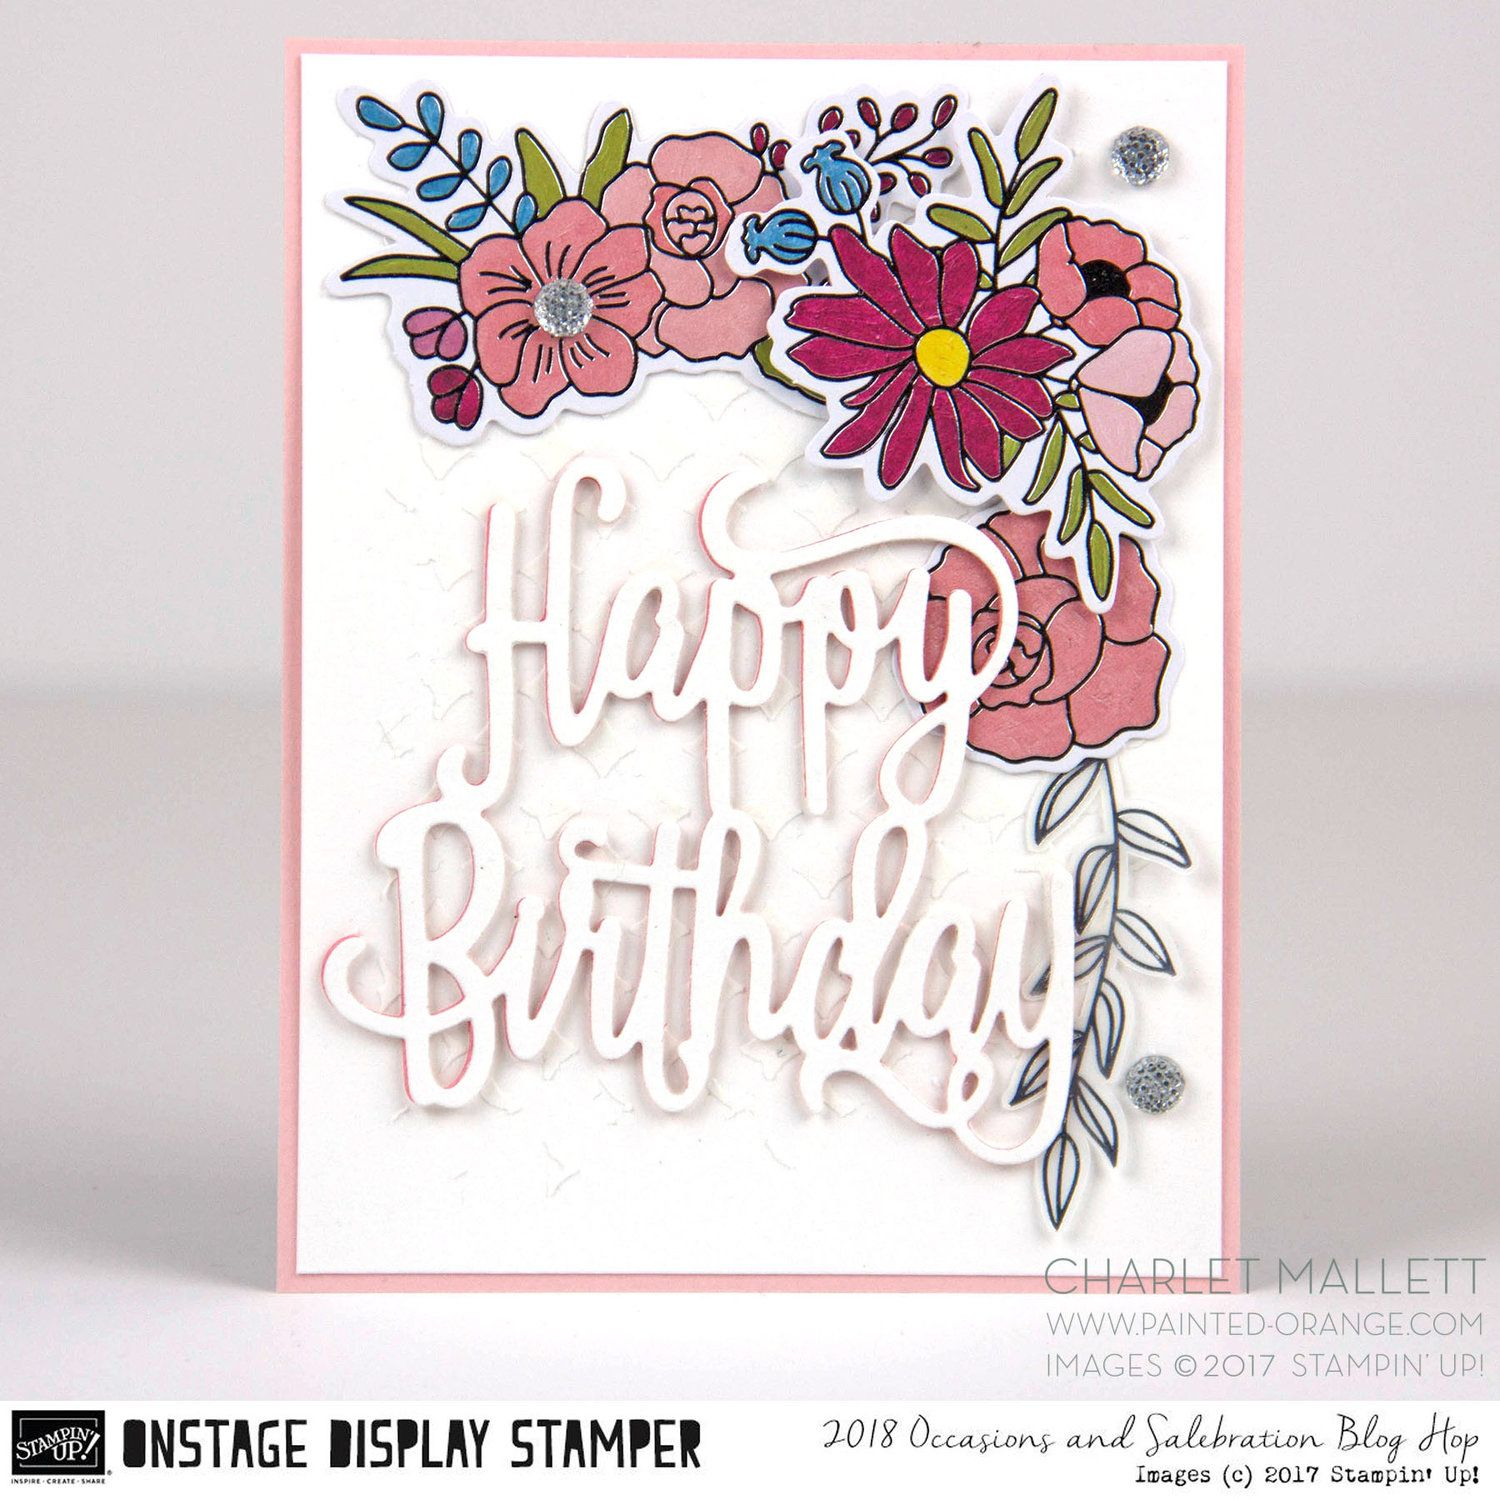 Wrap up on stage display stamper blog hop day 7 cards happy birthday card using cake soire collection products charlet mallett stampin up kristyandbryce Images